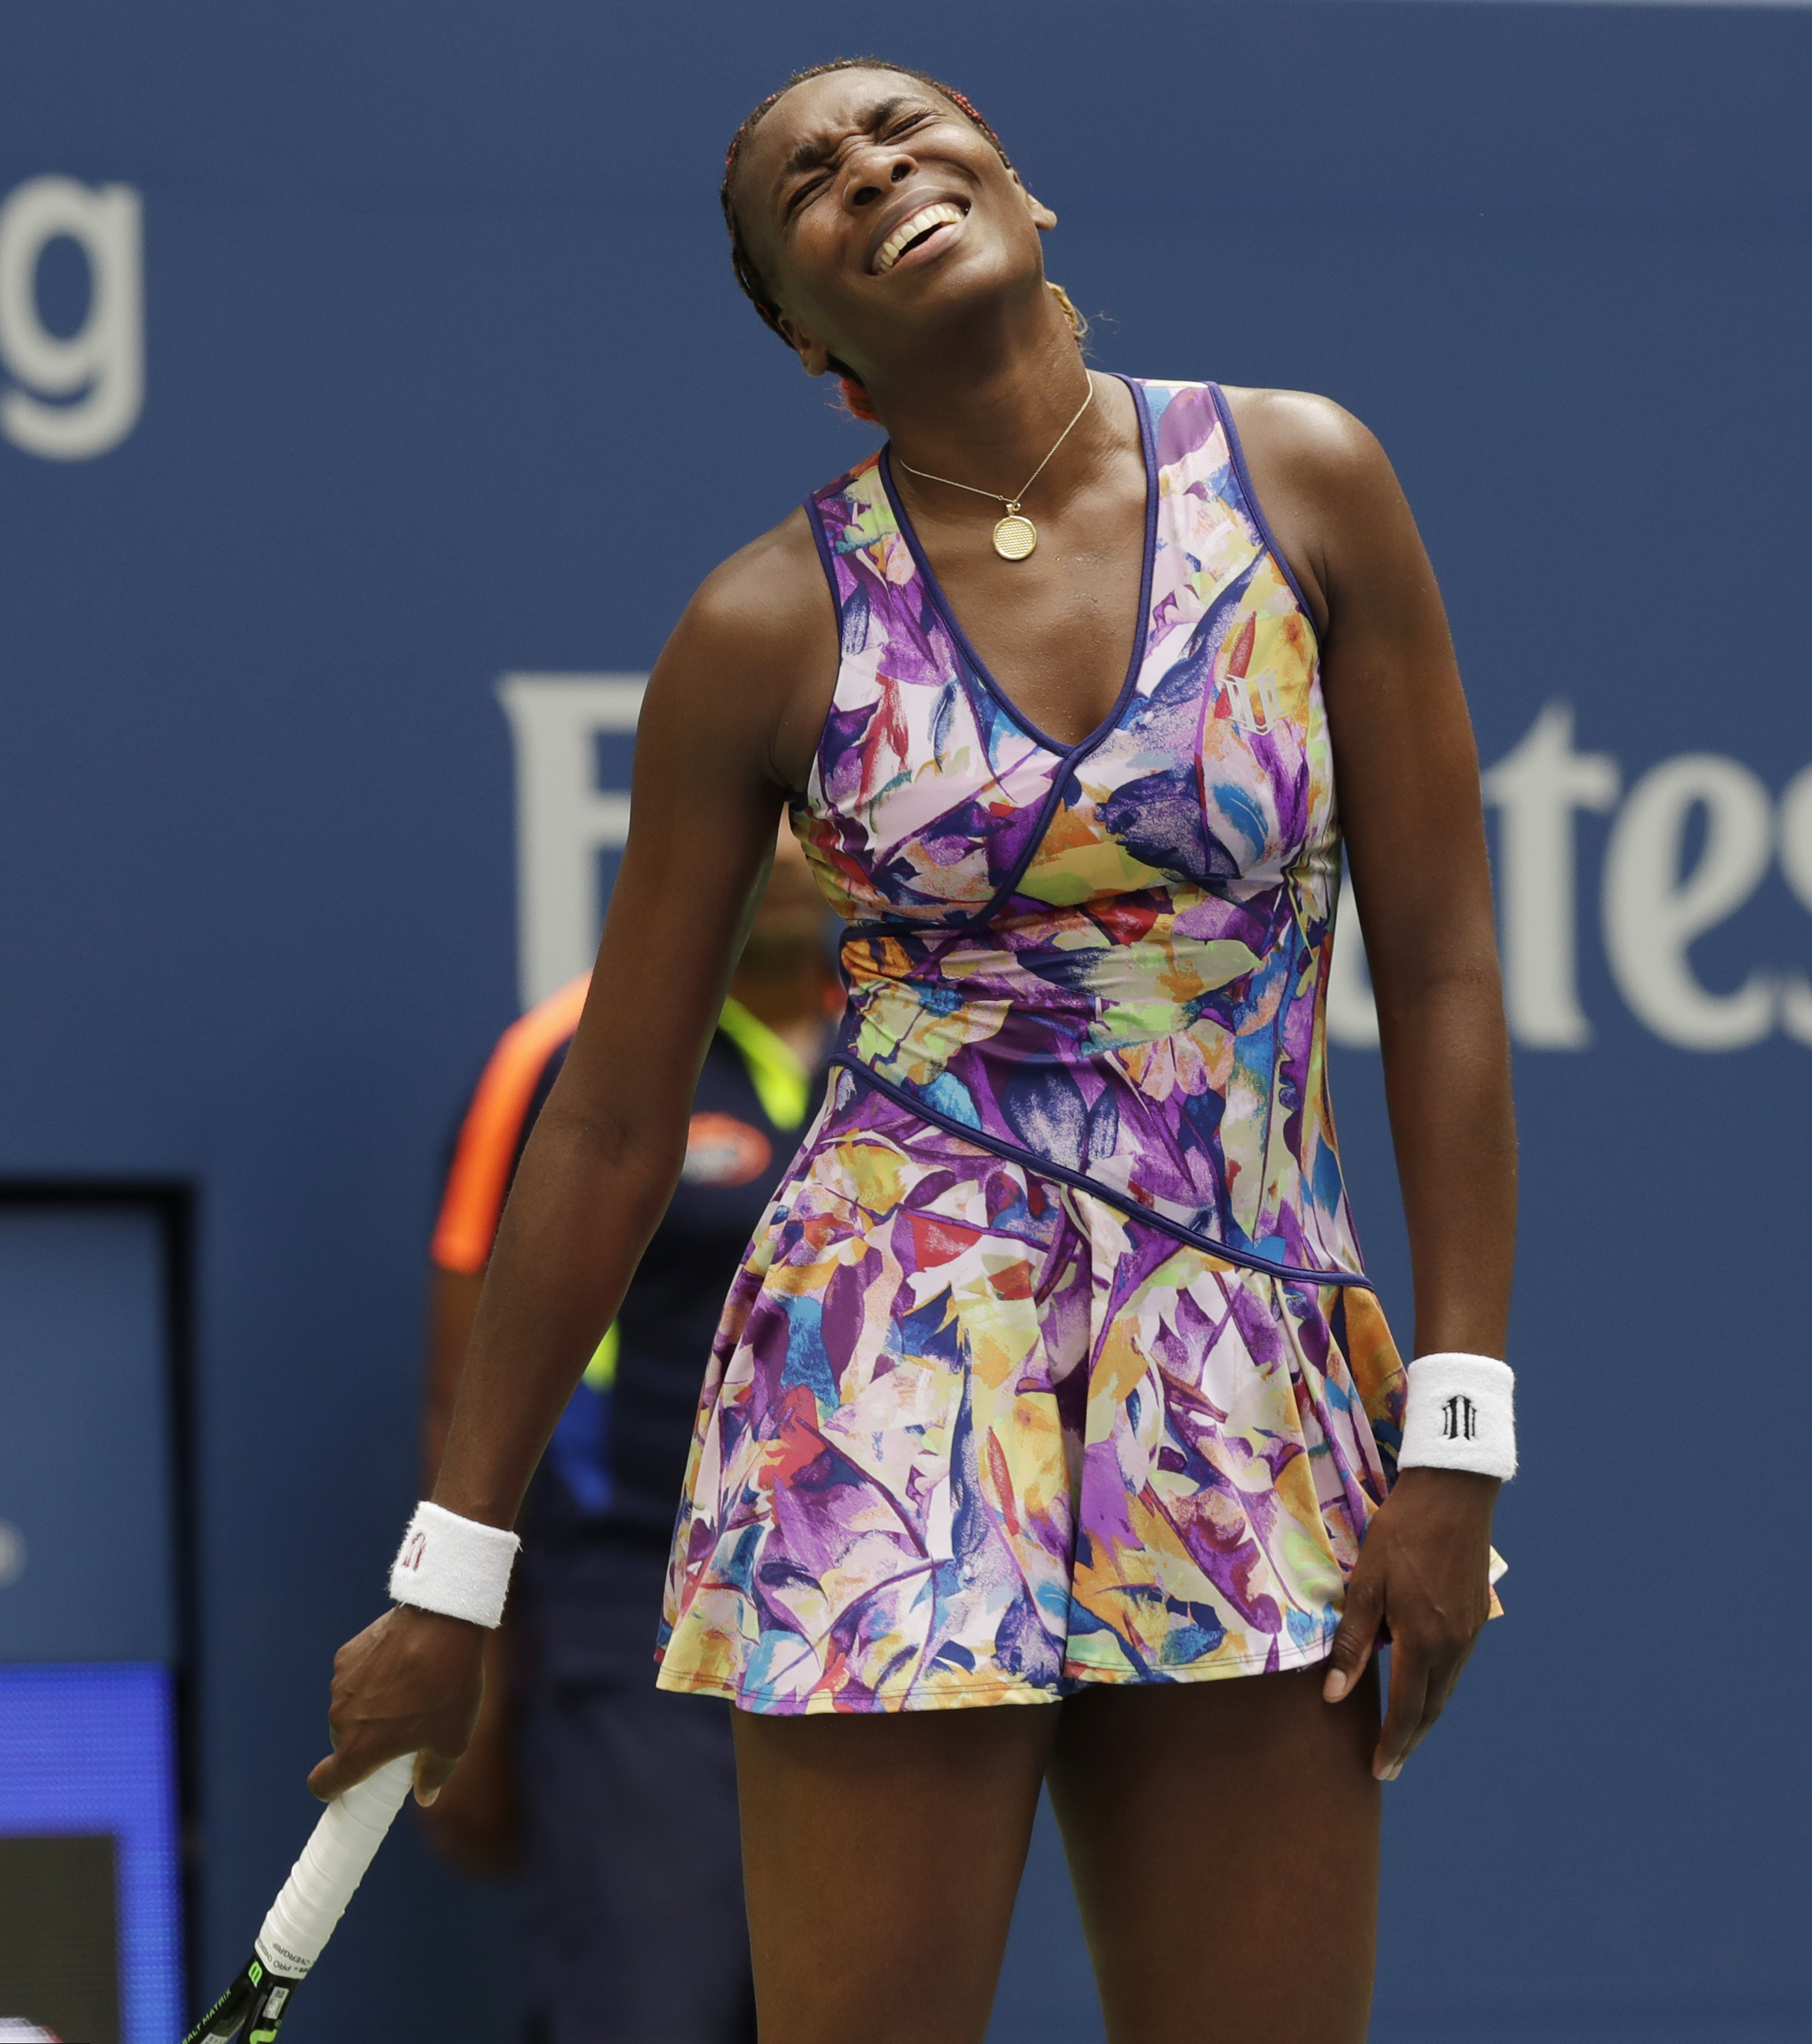 Venus Williams reacts after a point to Karolina Pliskova, of the Czech Republic, during the fourth round of the U.S. Open tennis tournament, Monday, Sept. 5, 2016, in New York. (AP Photo/Charles Krupa)